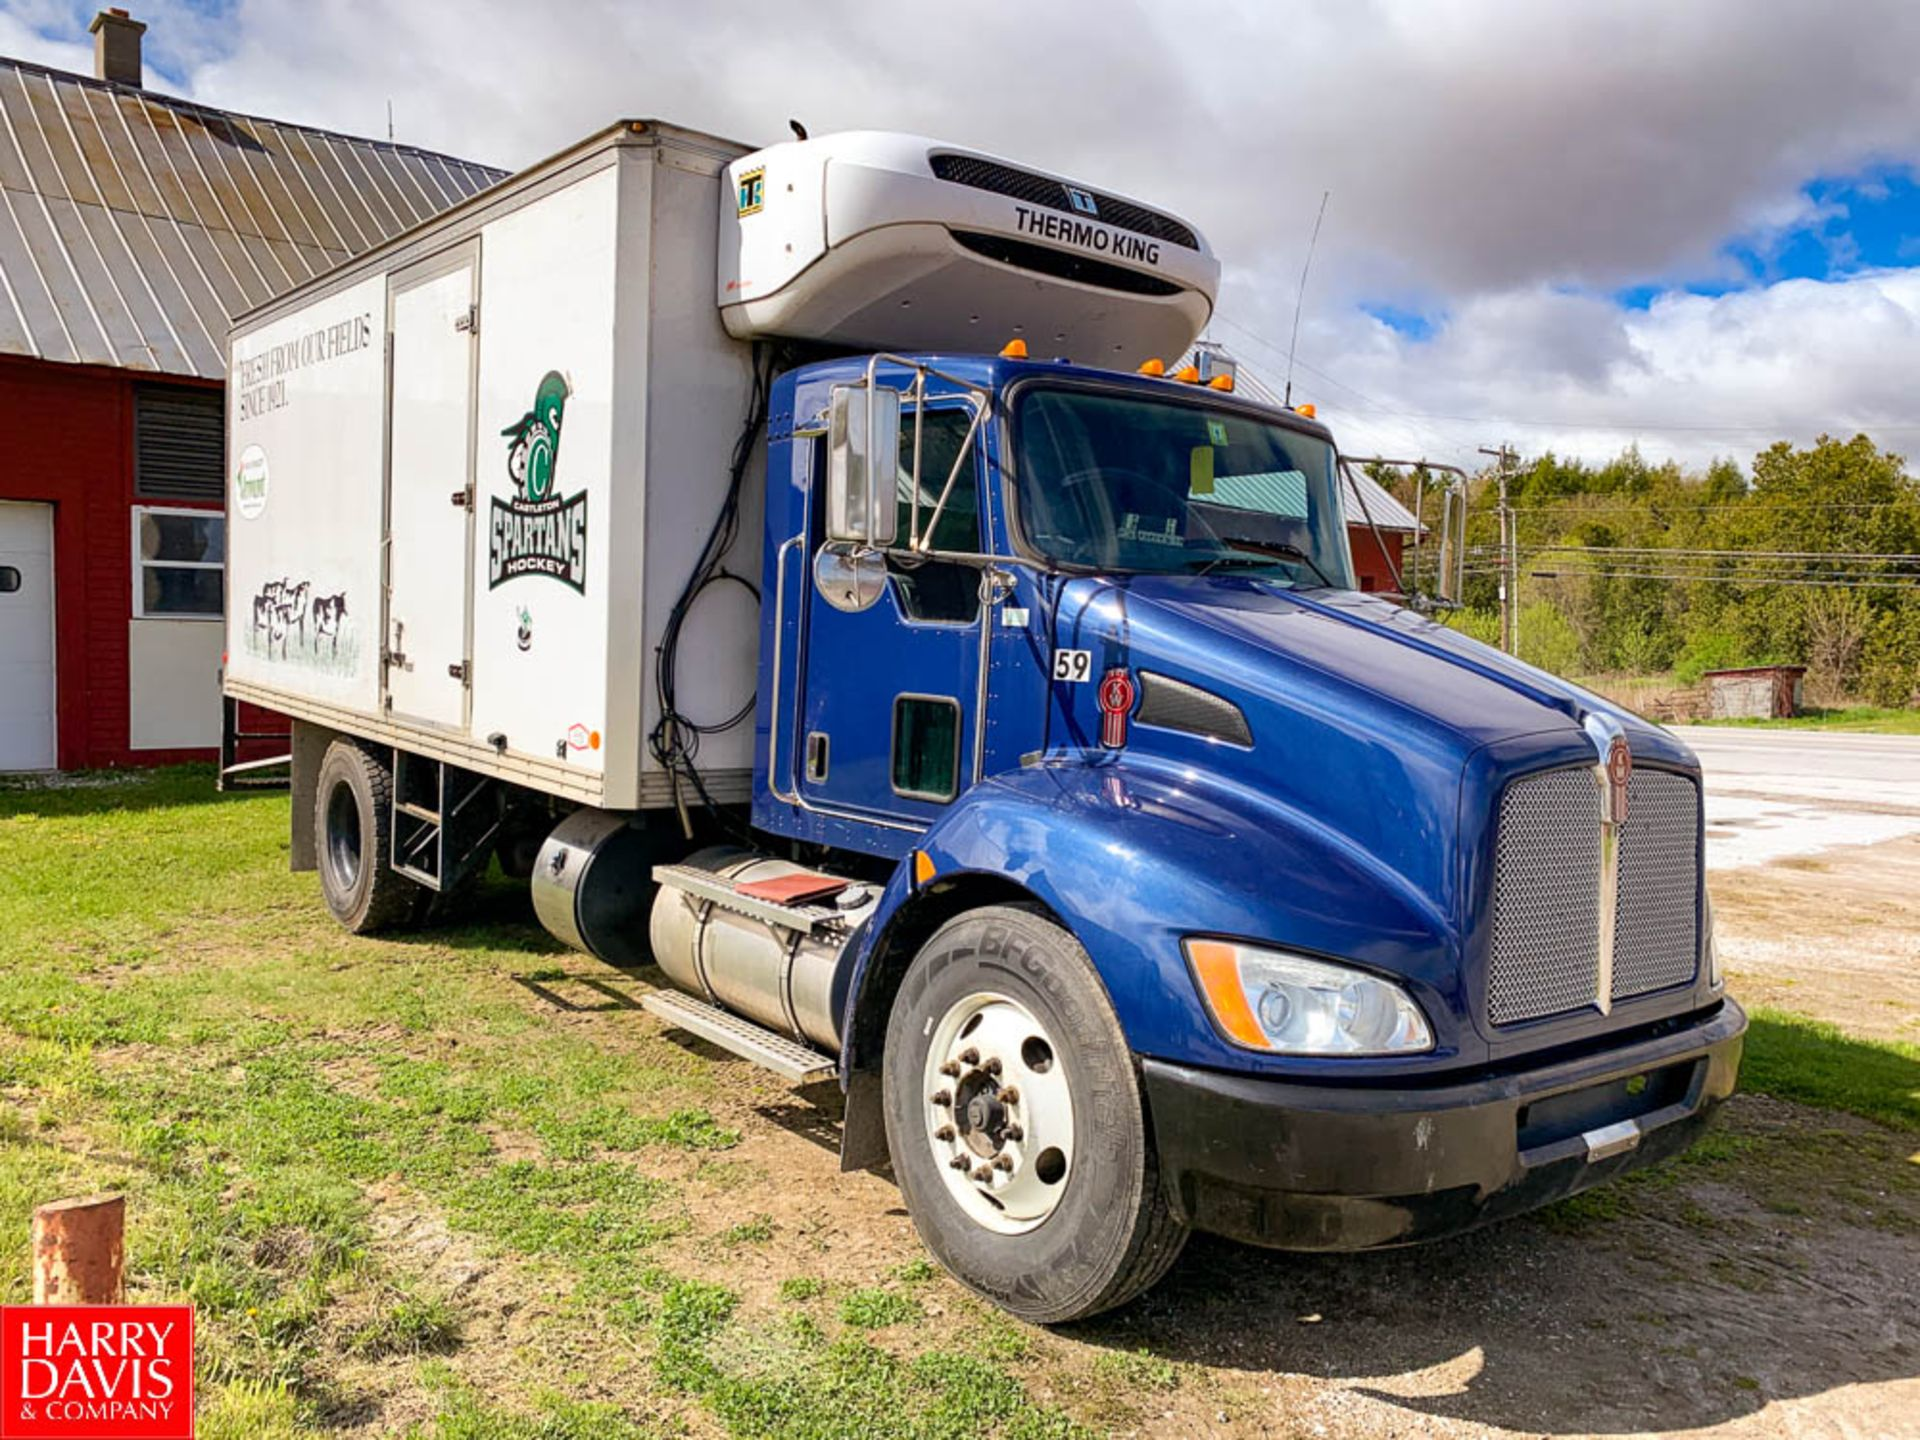 2012 Kenworth 18' Refrigerated Delivery Truck Model: T-270, 26,000 GVWR, with Paccar PX-8-300 - Image 2 of 8